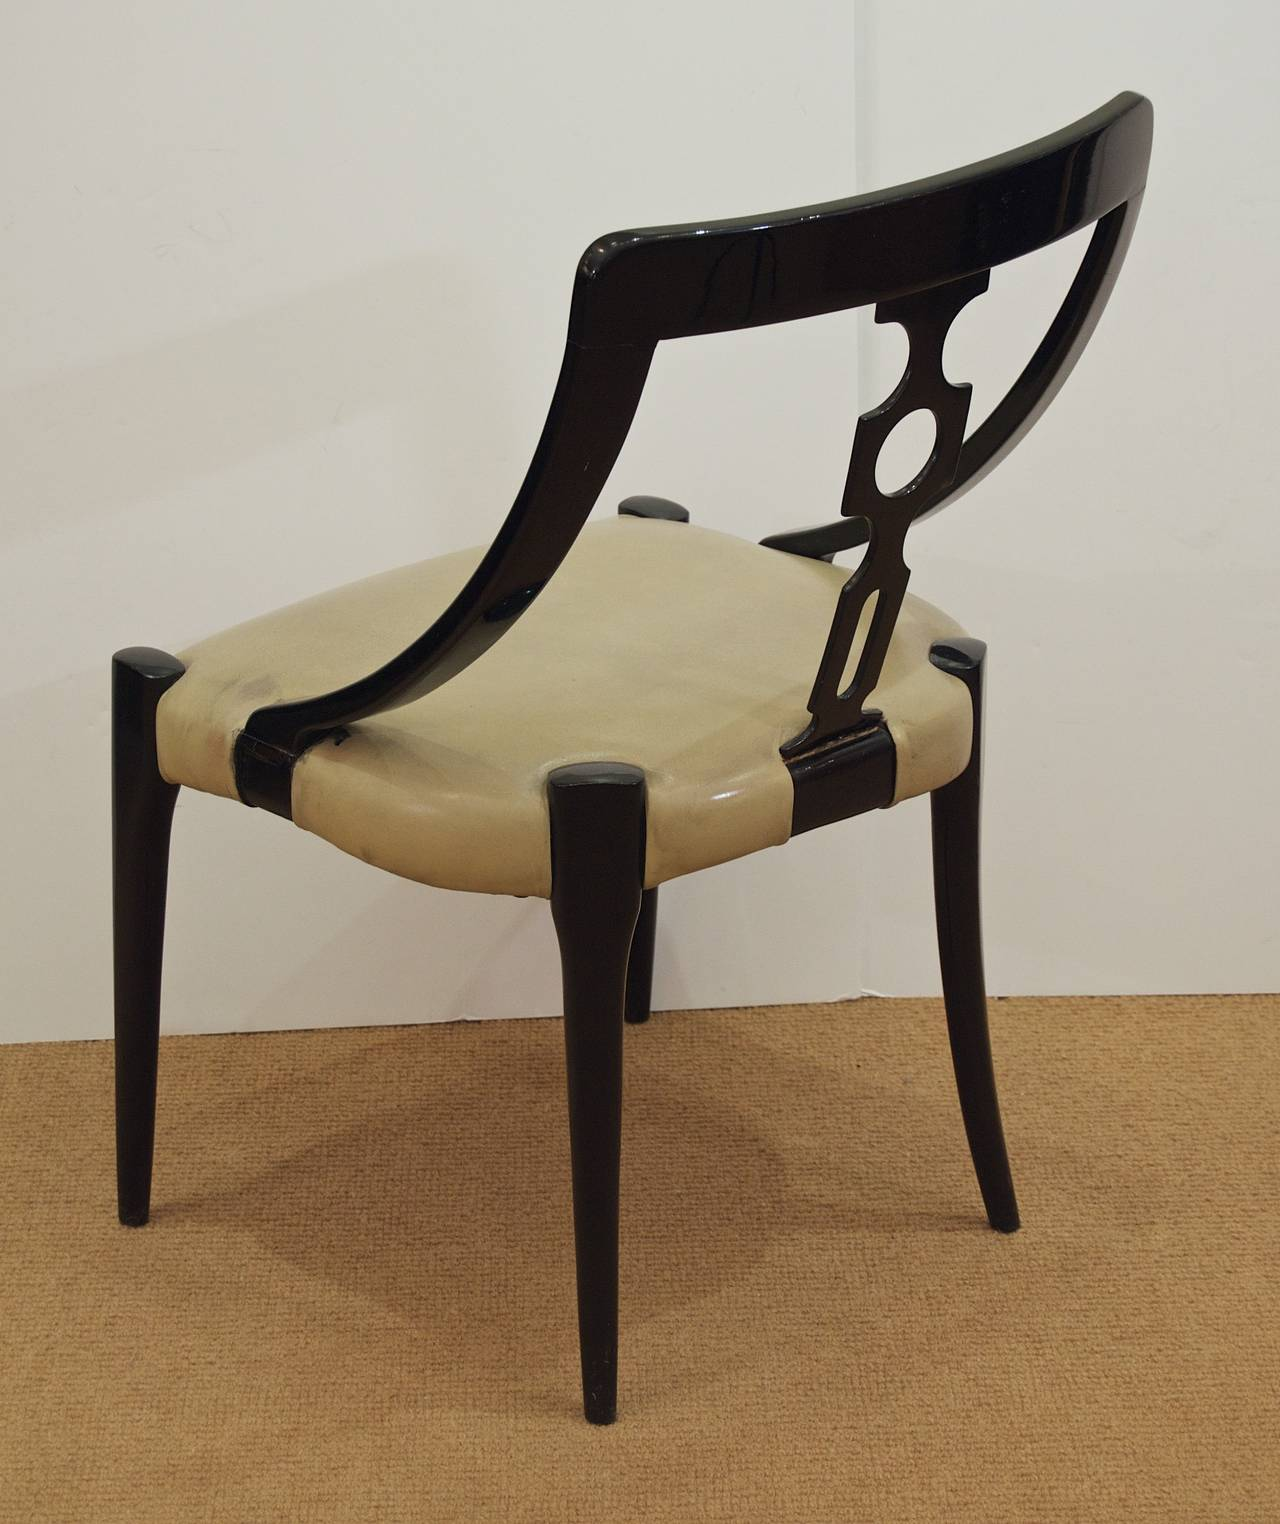 Black Lacquer Dining Room Chairs: Ten French Black Lacquer Dining Room Chairs At 1stdibs